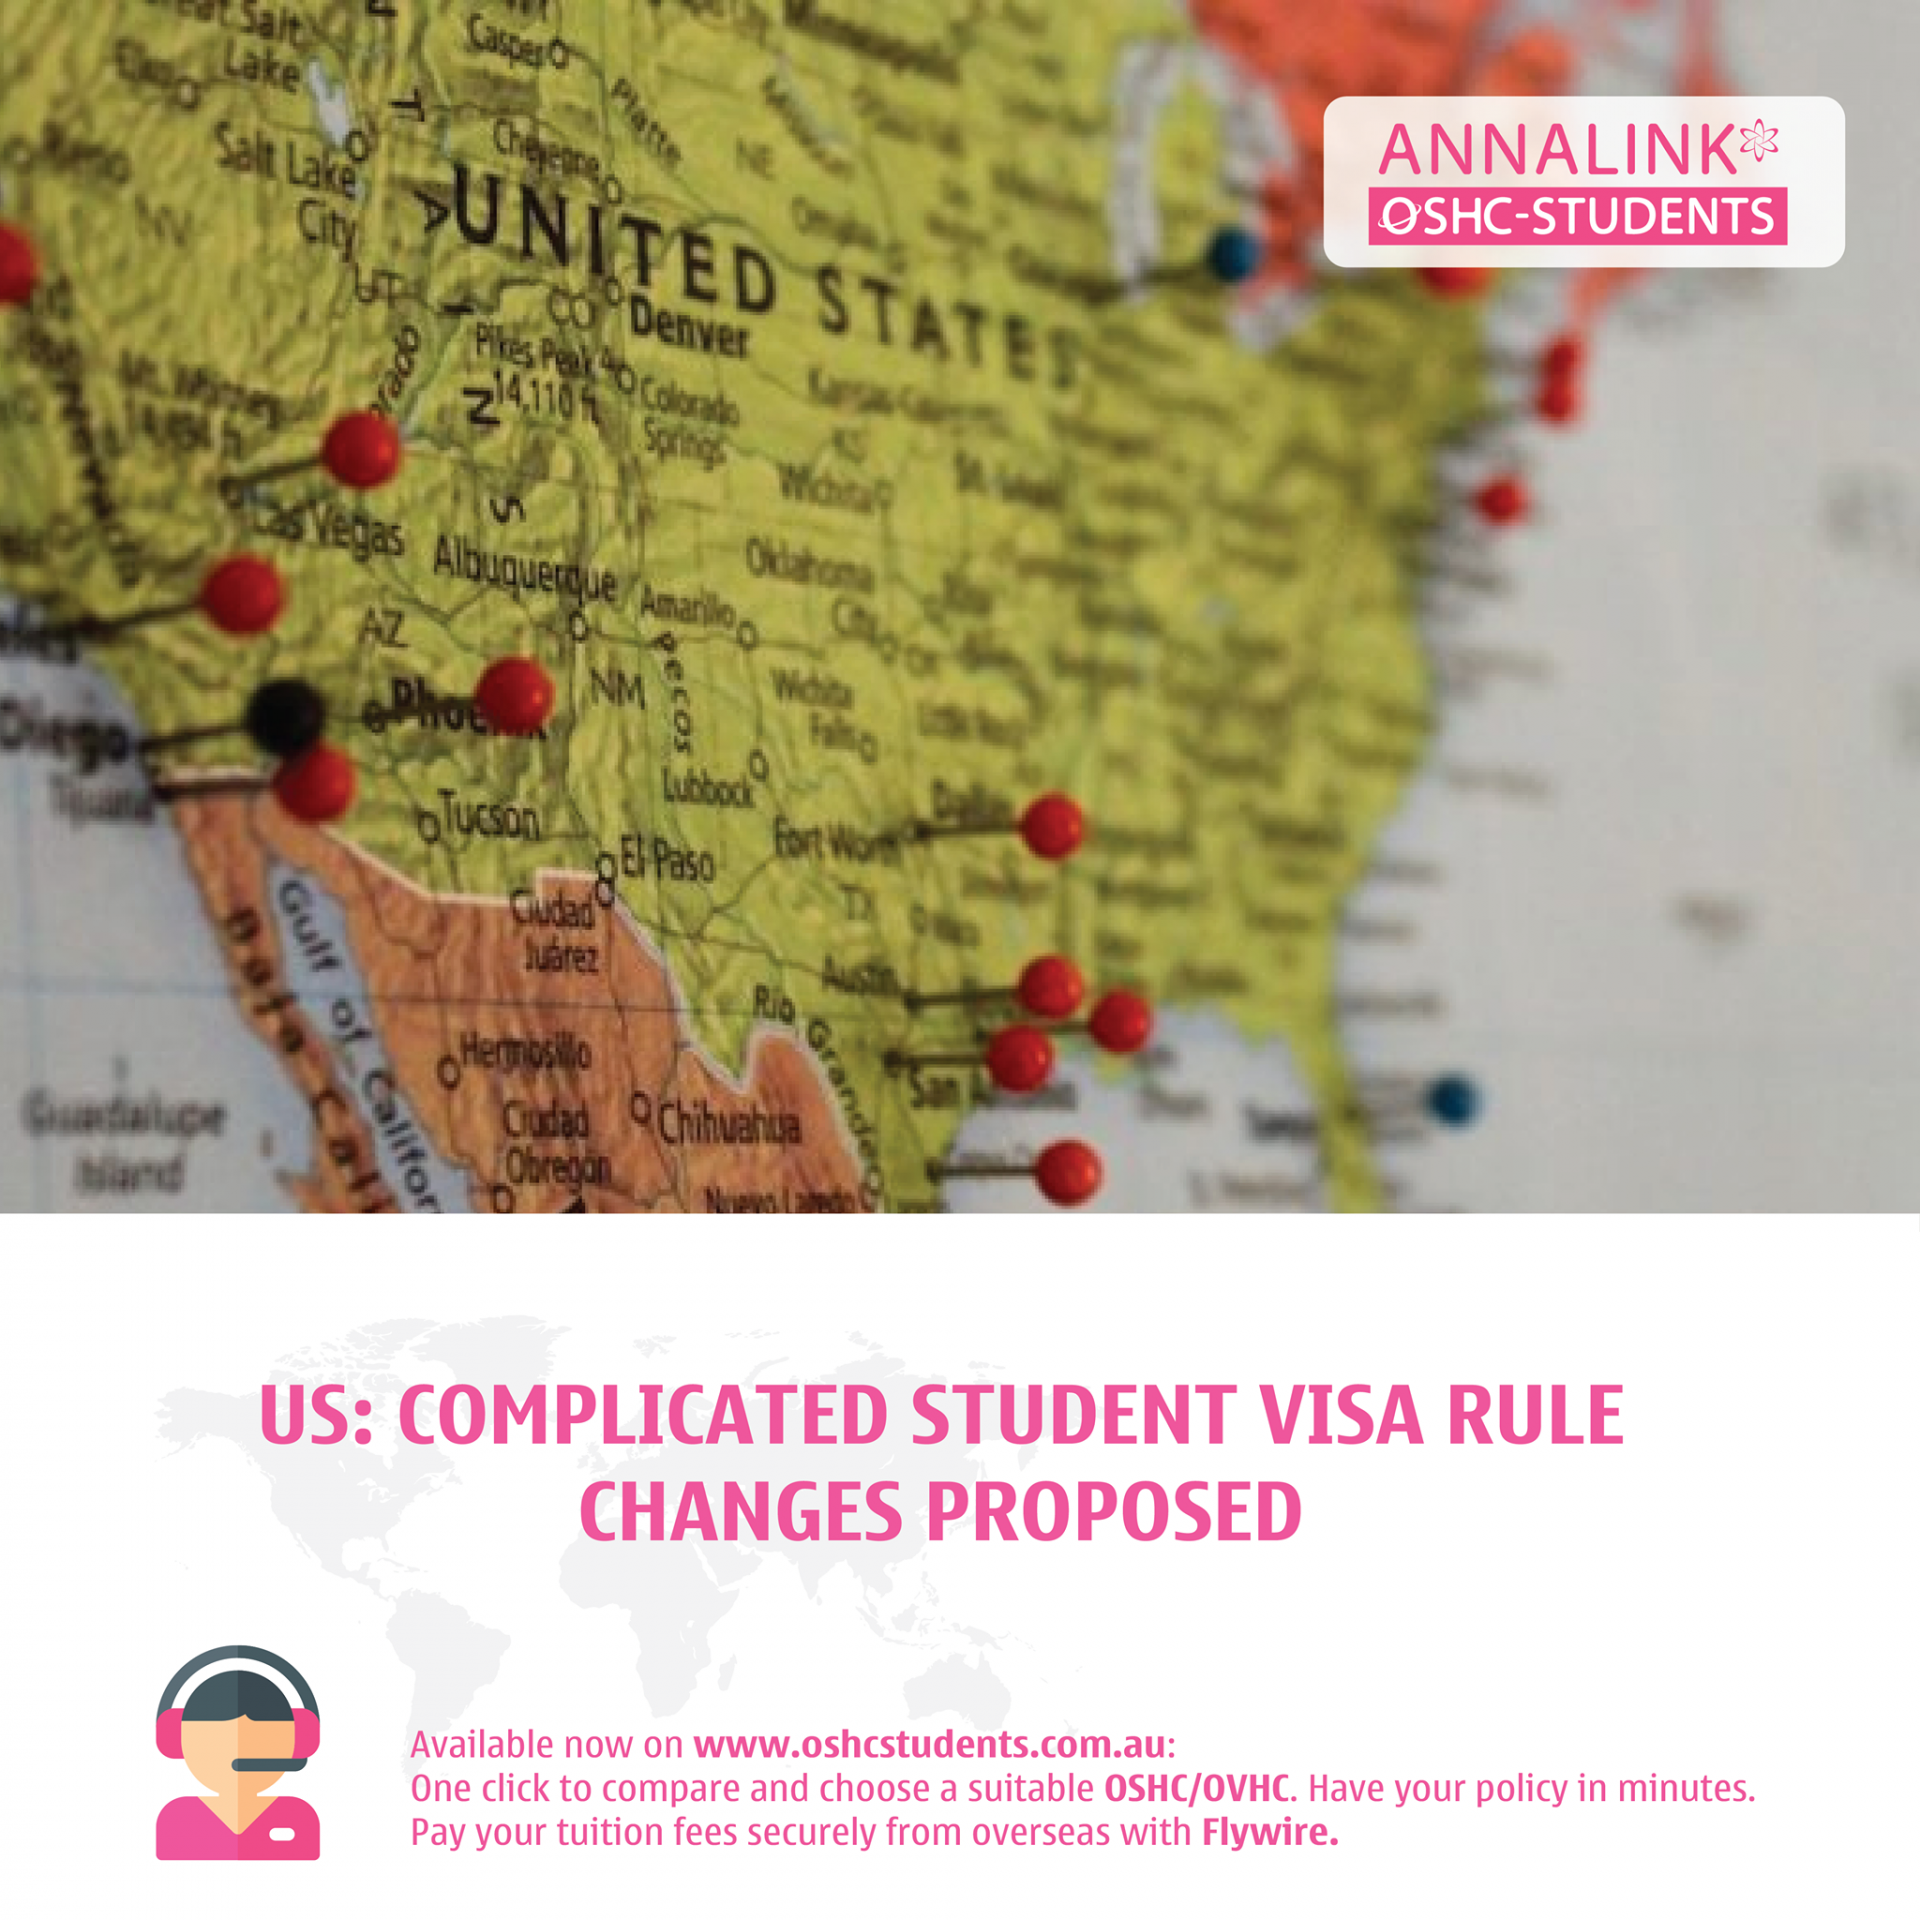 us complicated student visa rule changes proposed